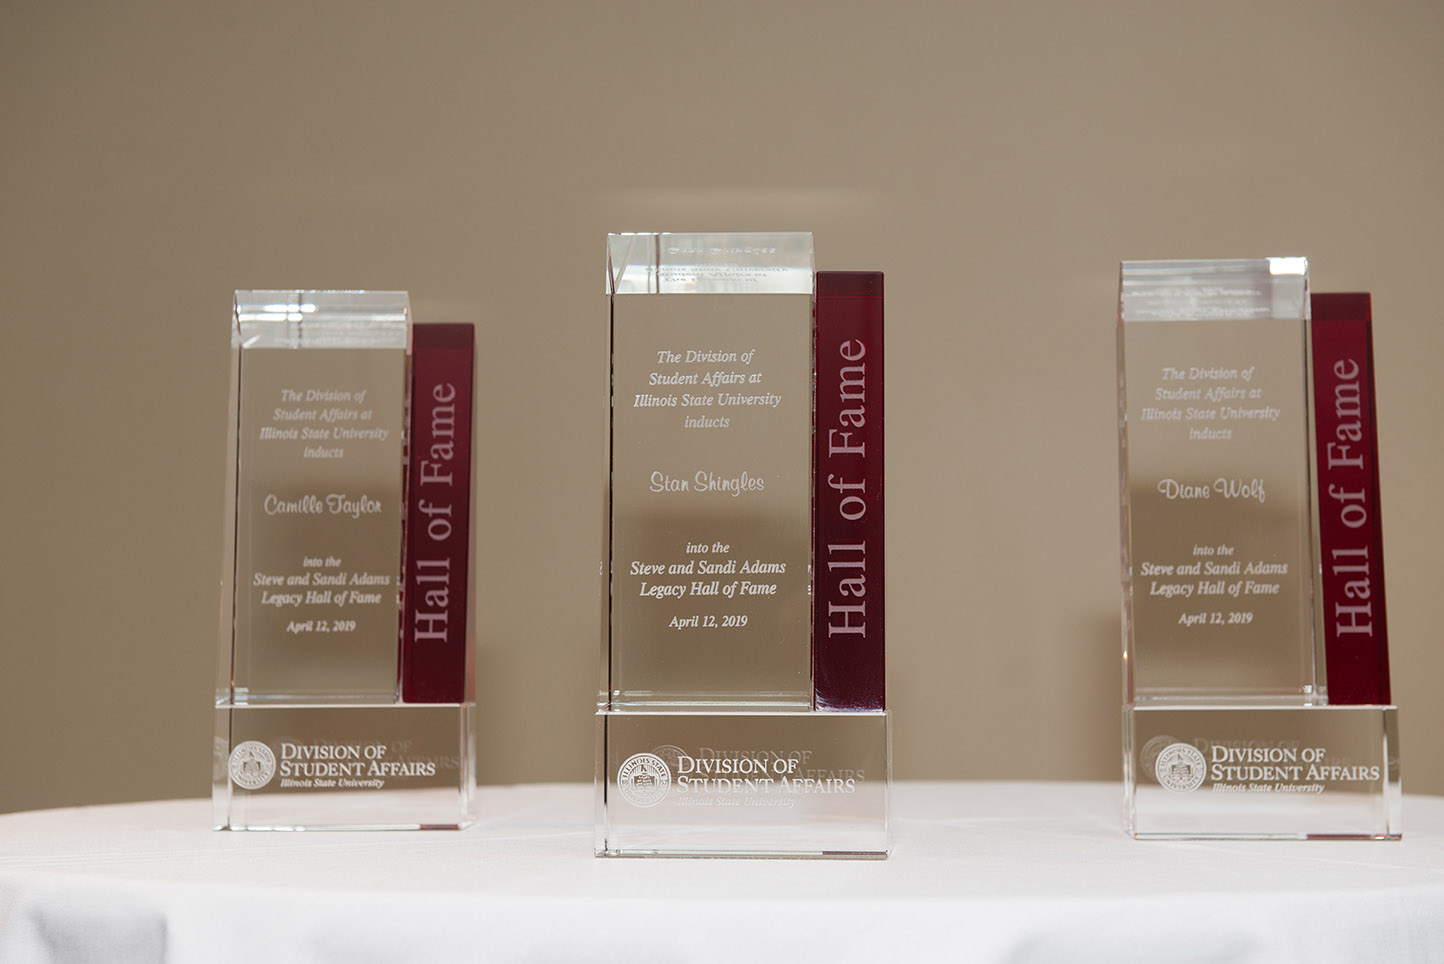 Awards for the Hall of Fame that include Camille Taylor, Stan Shingles, and Diane Wolf